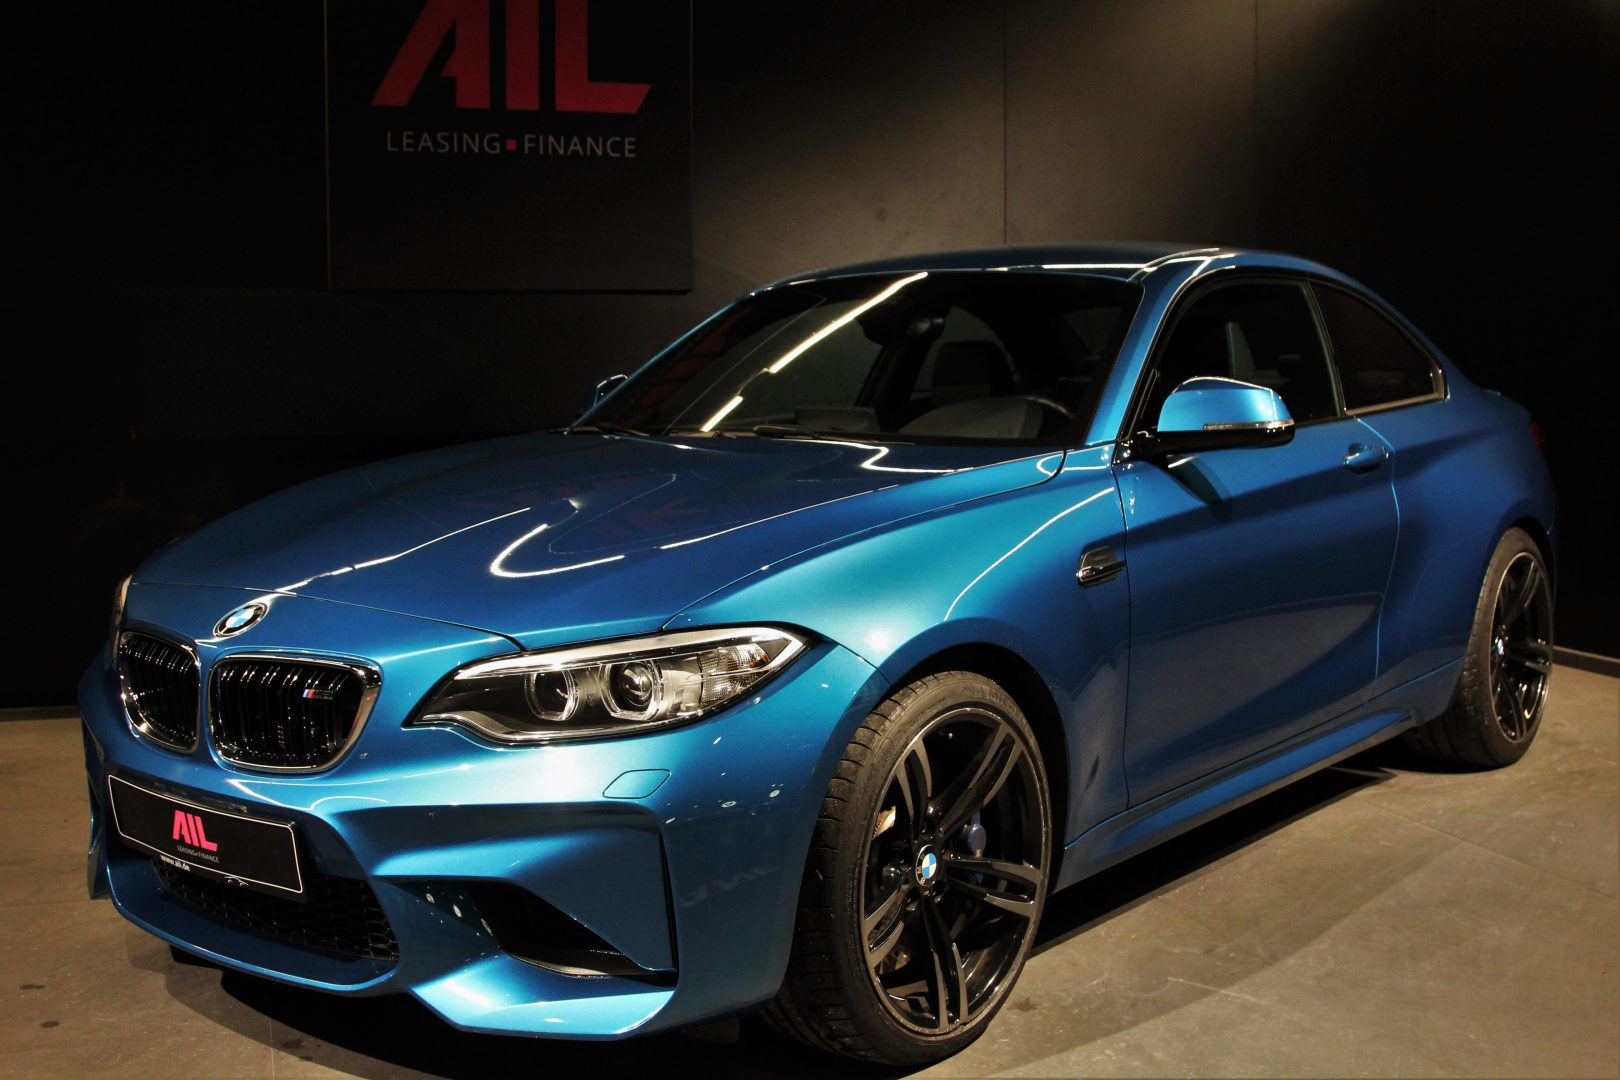 AIL BMW M2 LONG BEACH BLUE DKG  9